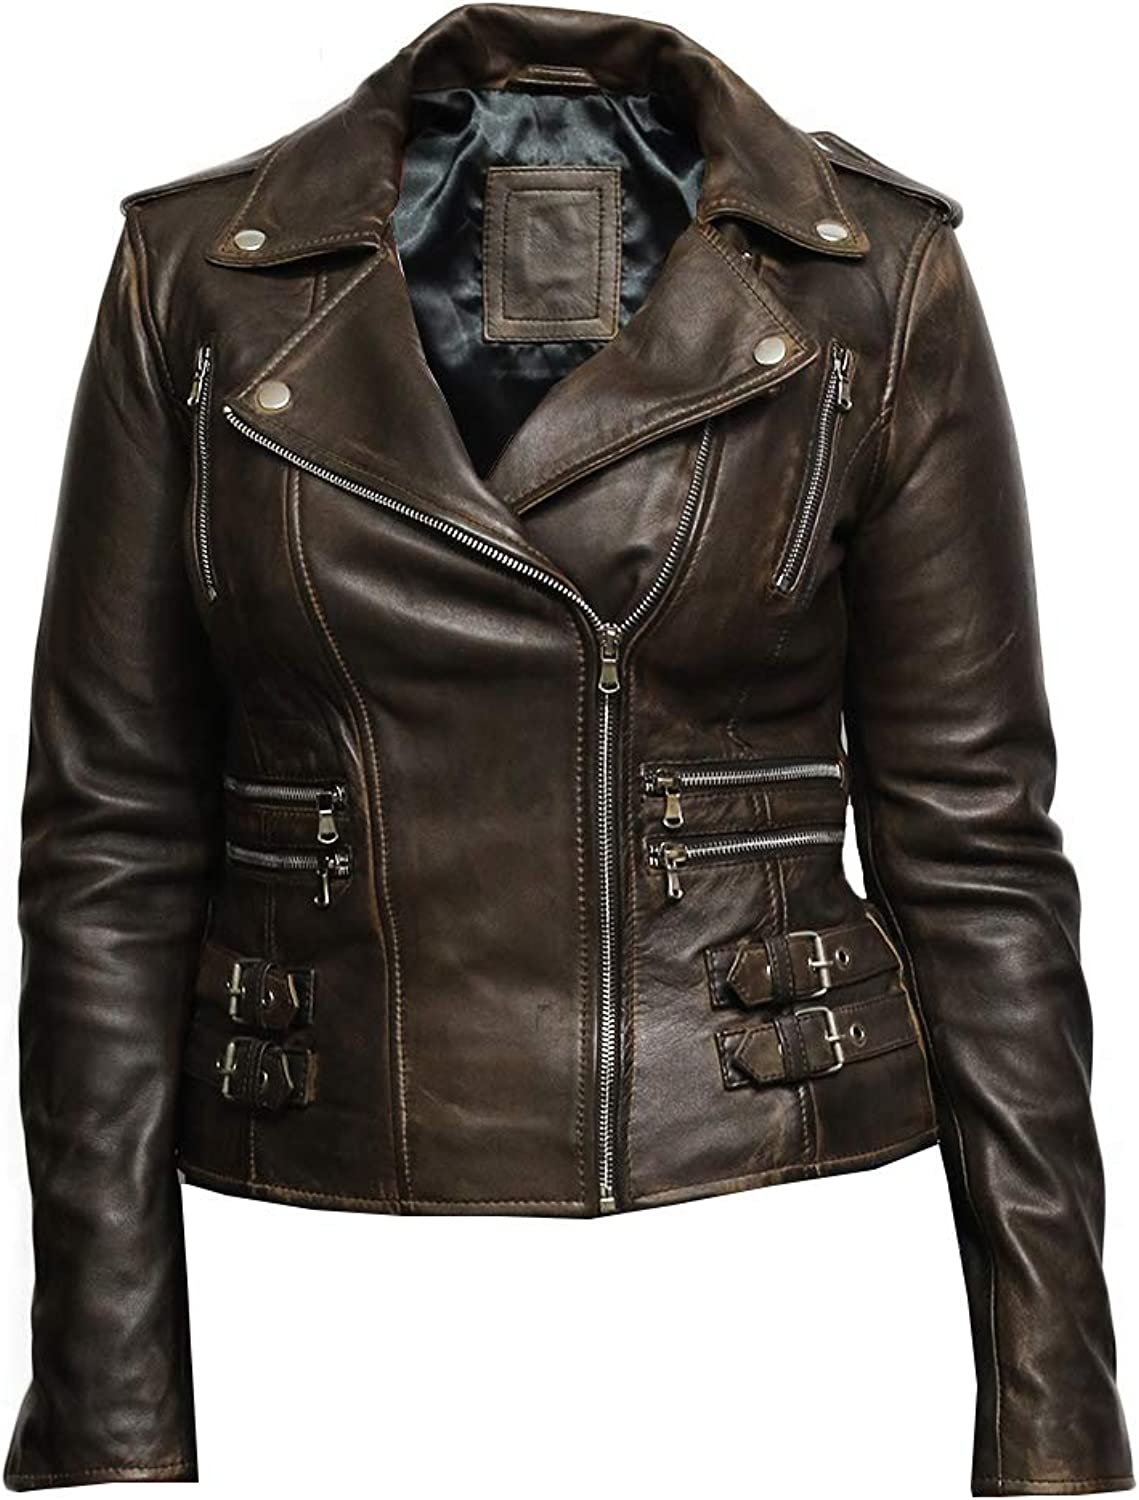 Brandslock Womens Genuine Leather Biker Jacket Fitted Vintage Rock